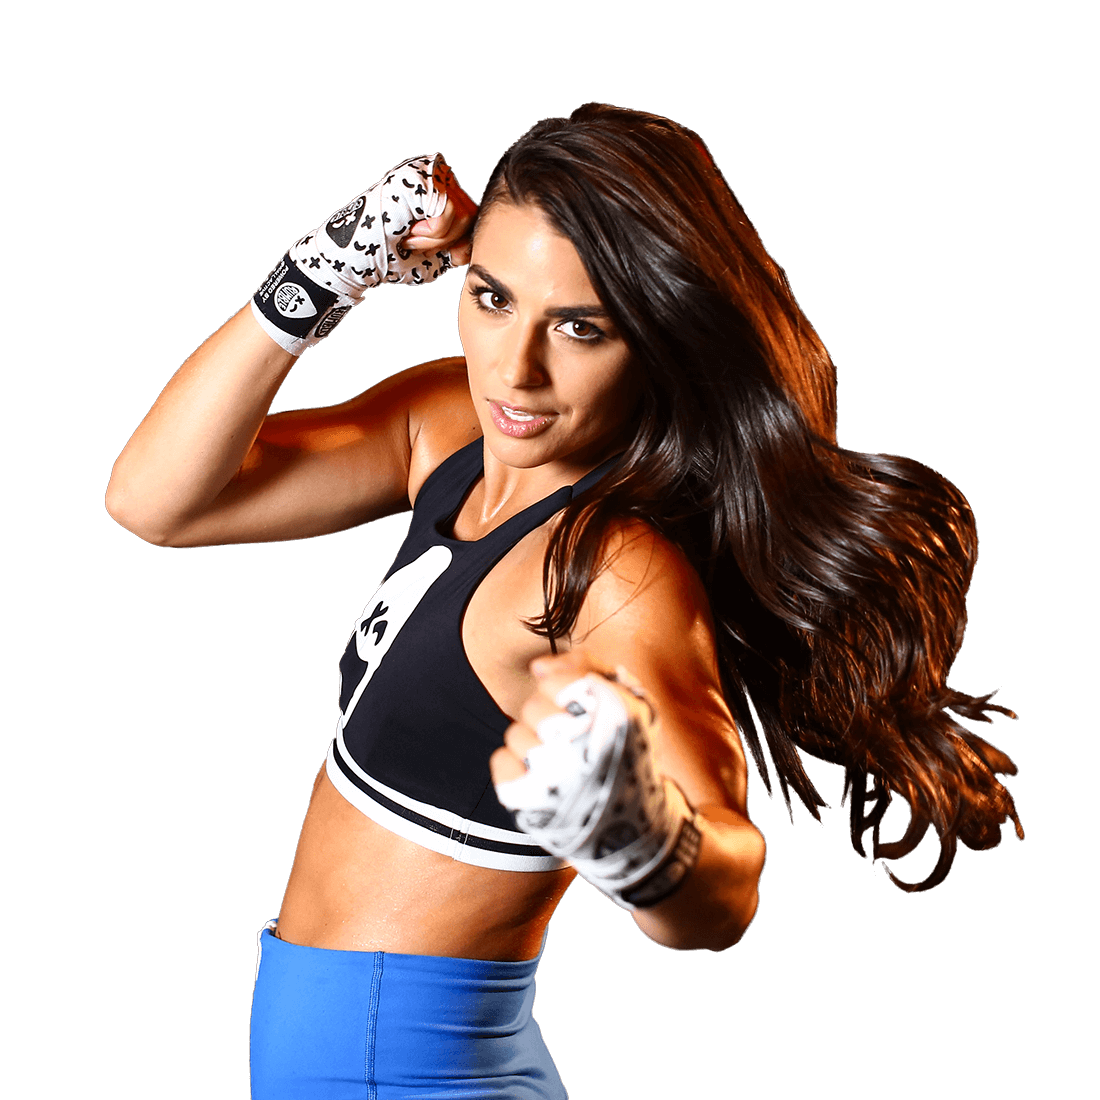 RB_Erika_Boxing_1_cut-out